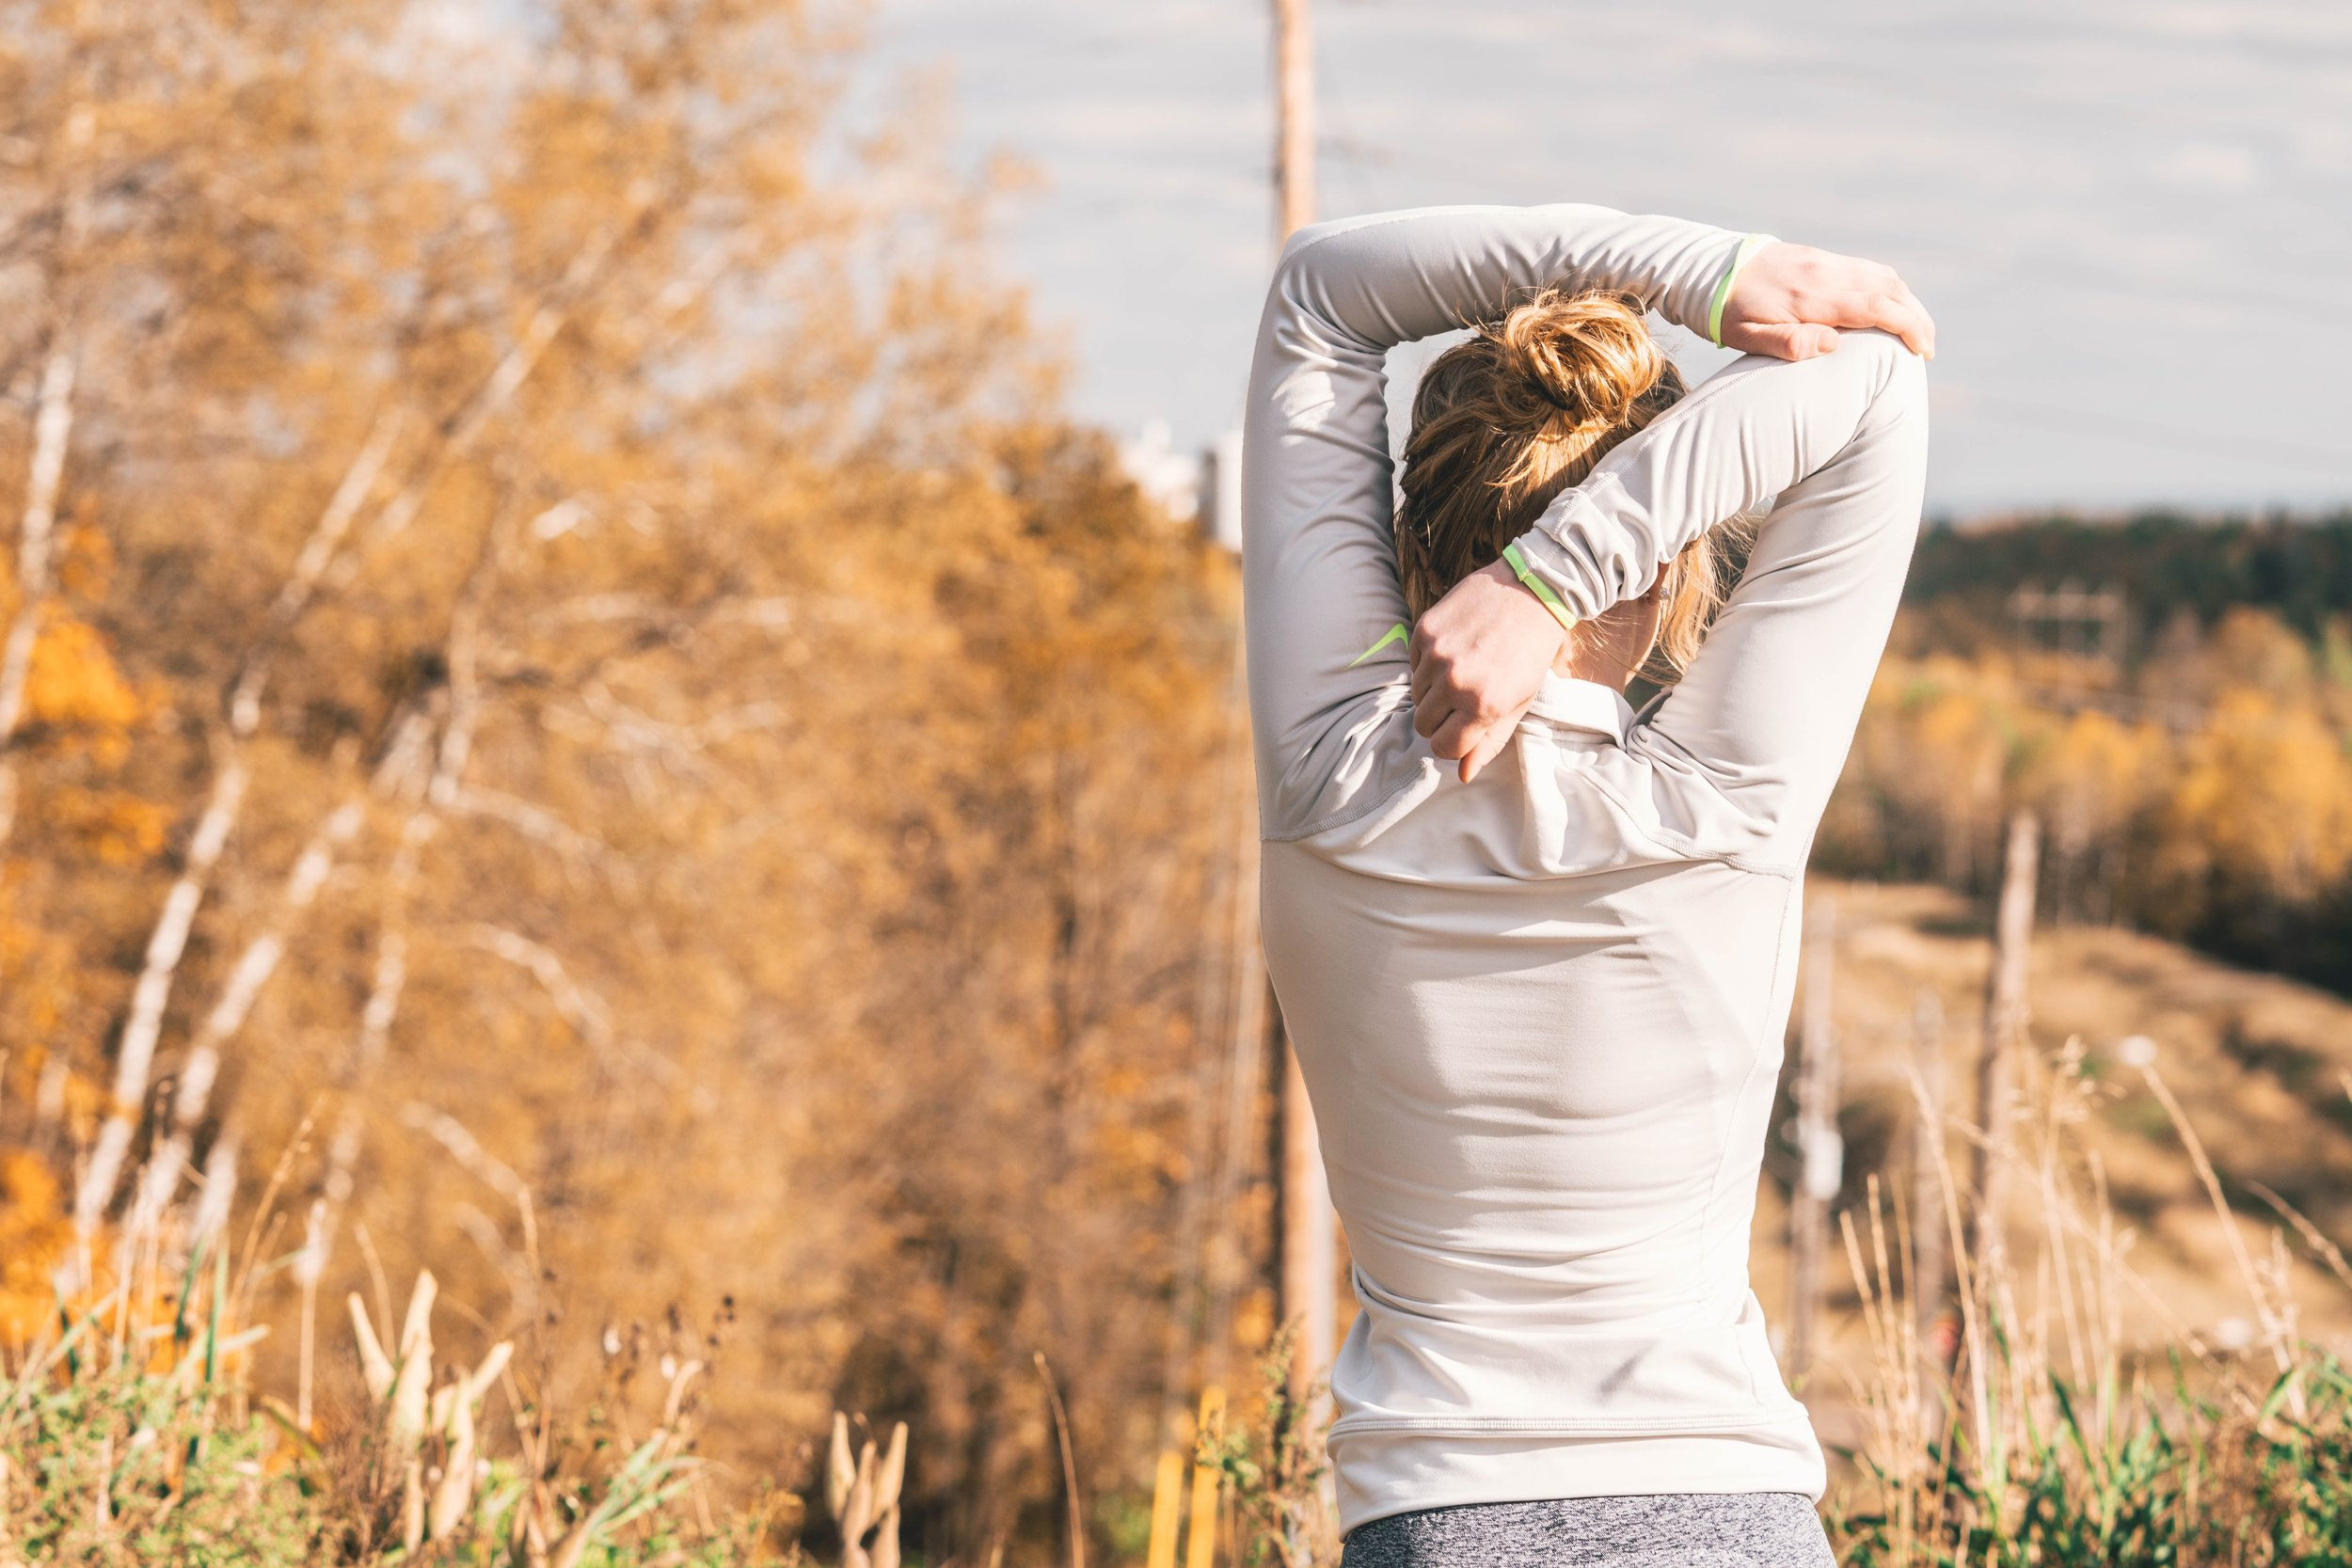 "REACH YOUR HEALTH GOALS. - As your nutrition coach, I am your accountability partner, counselor and personal cheerleader. Together, we will look ""holistically"" at all areas of your life and see what needs support, create a plan of action and let the growth begin. I examine the unique perspective of your life and reveal anything that has been standing in the way of living to your highest potential."